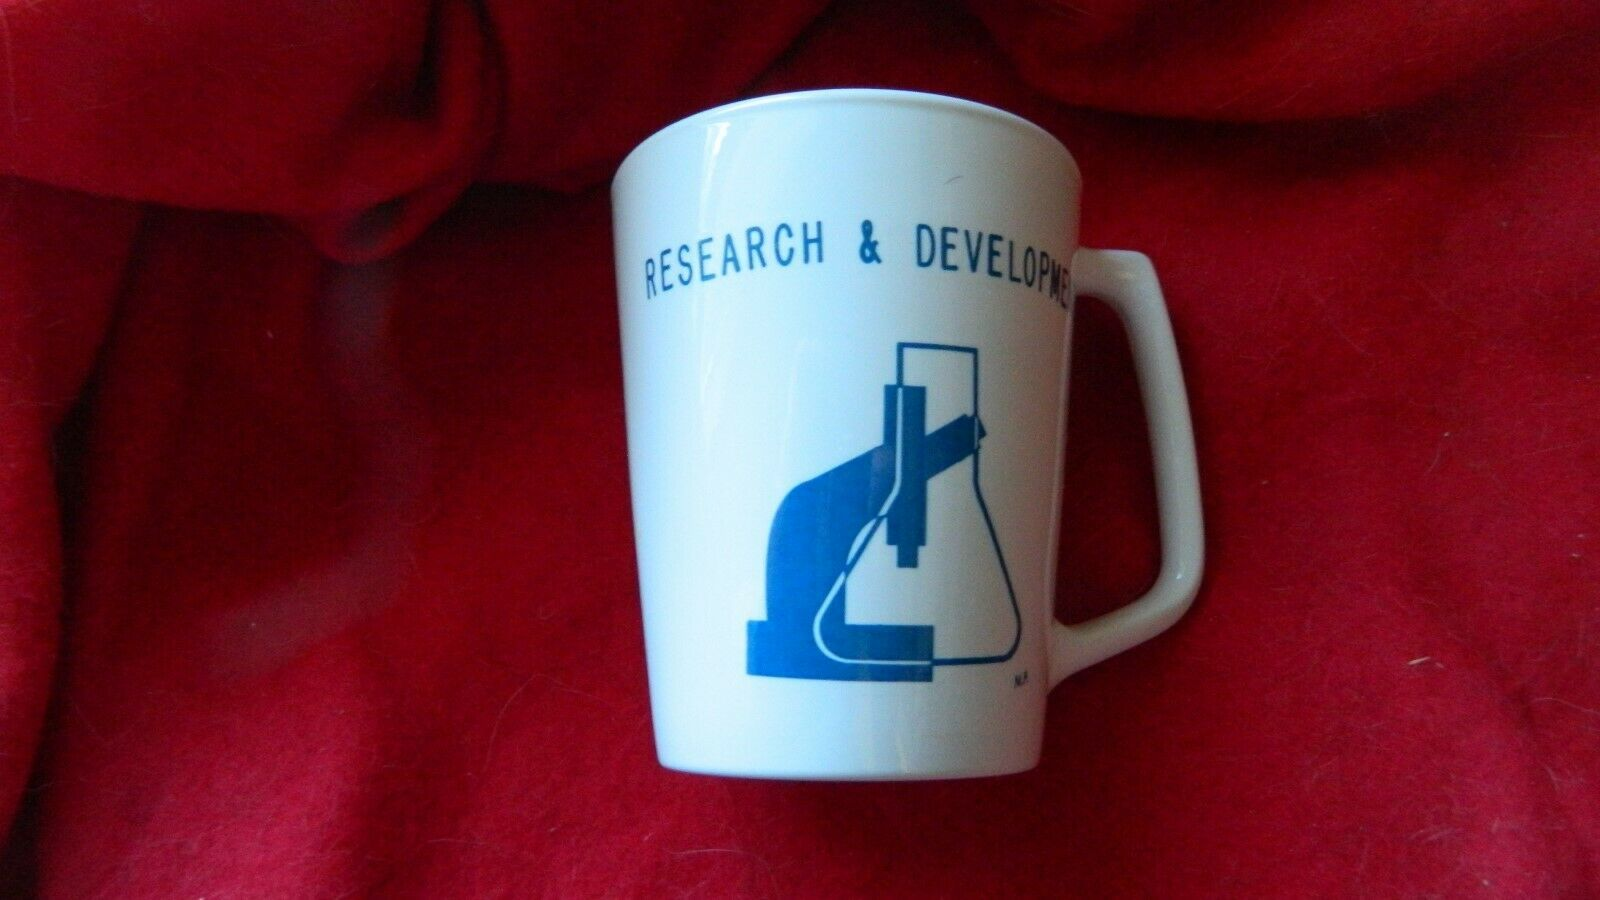 Primary image for CORNING GLASS WORKS RESEARCH & DEVELOPMENT CENTURA COFFEE MUG FREE USA SHIP RARE